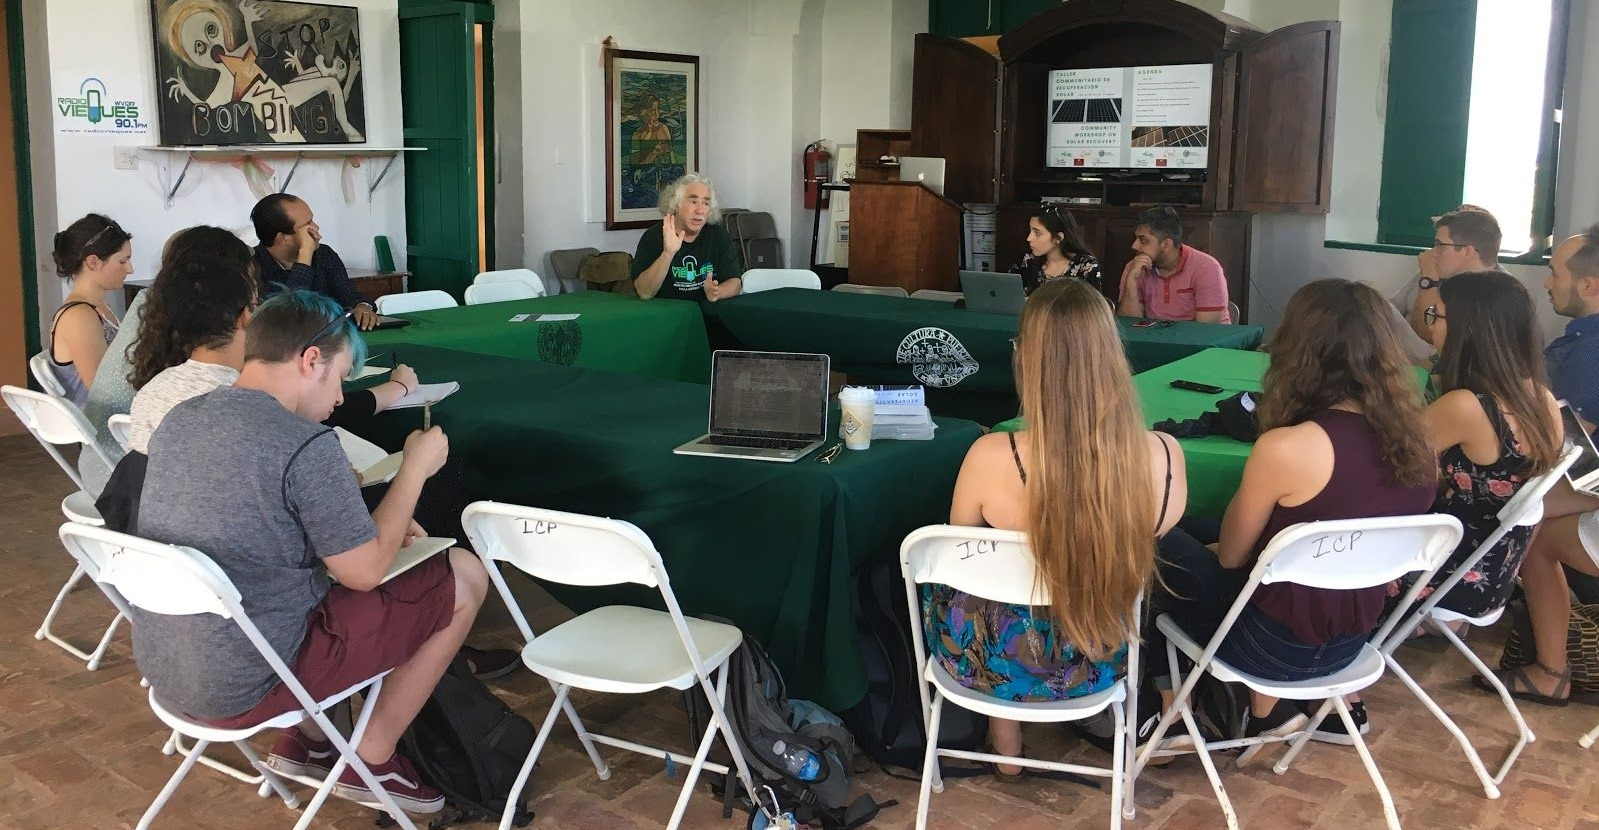 UMN Global Convergence Team in Vieques at the round table workshop headed by Footprint